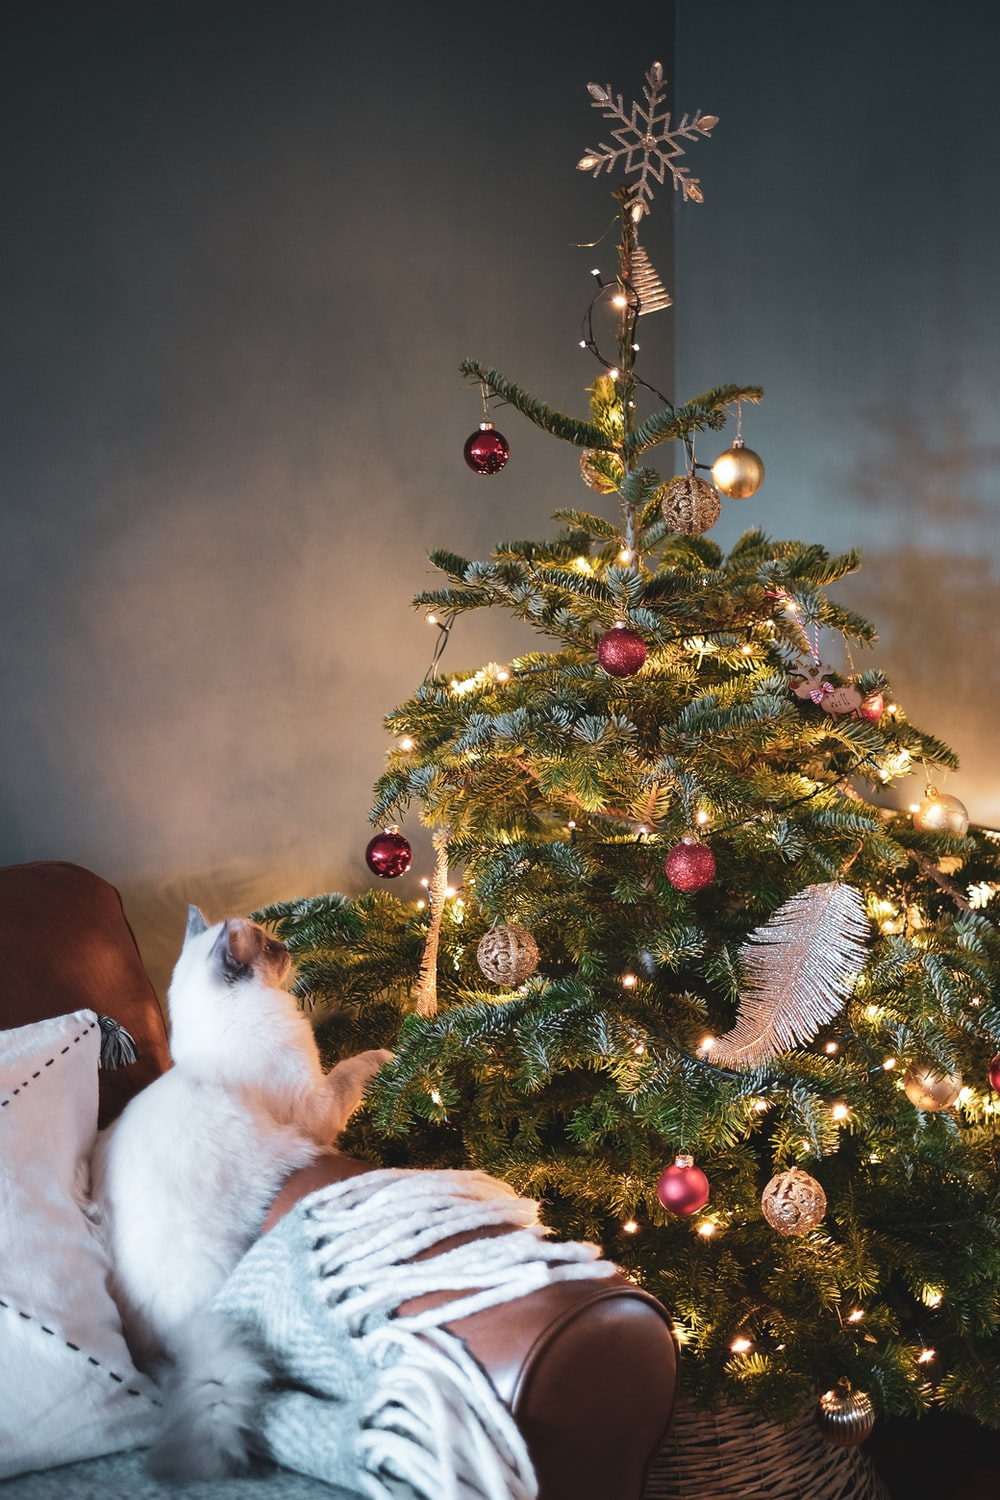 white and brown cat on white textile beside green christmas tree